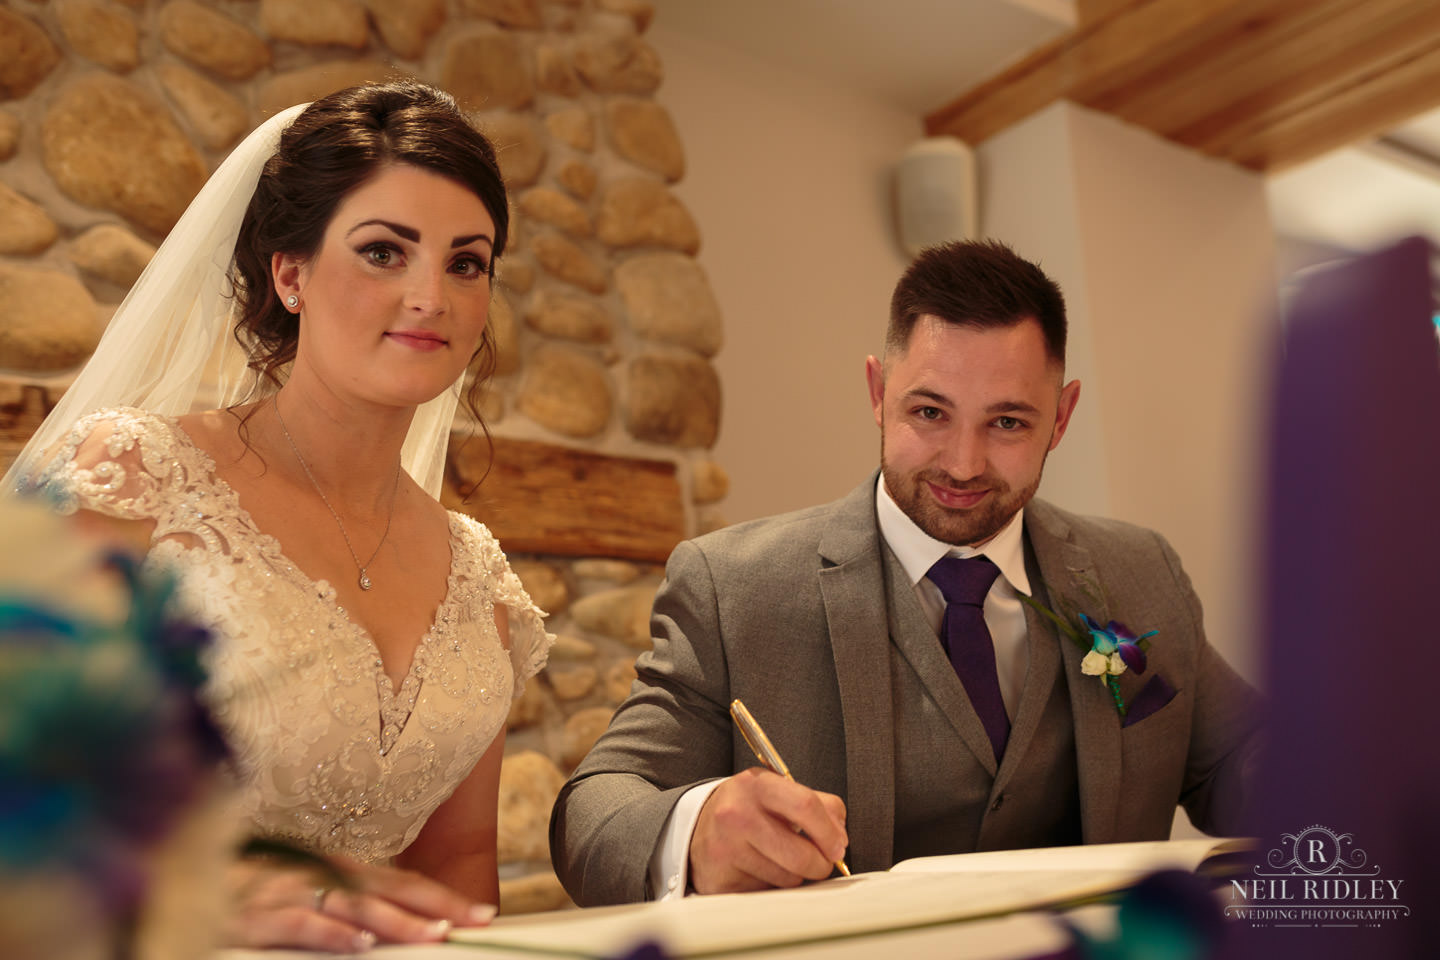 Bride and Groom sign the wedding registrar at The Mill at Conder Green